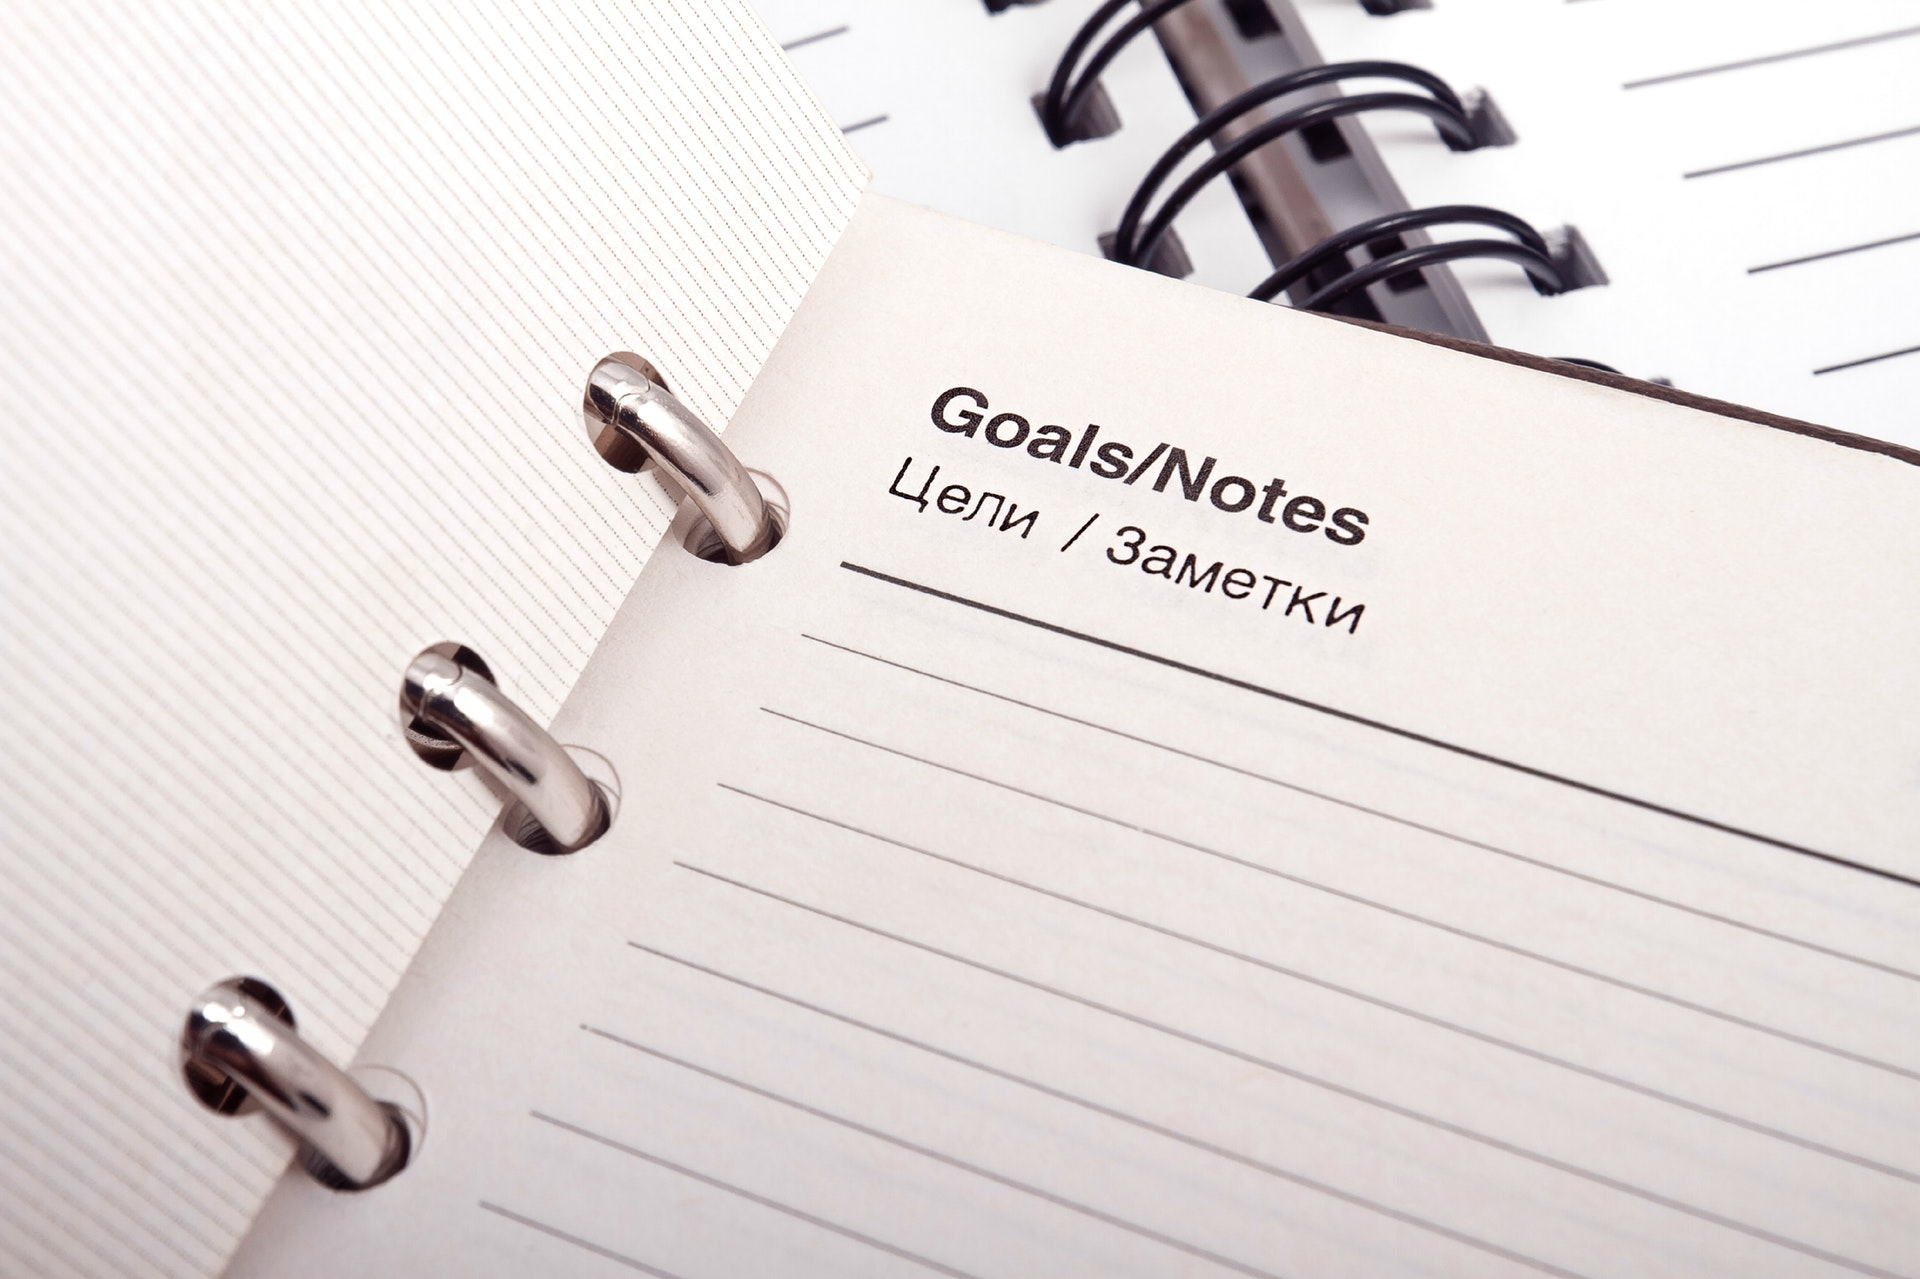 Do You Have Goals? – The Barna Research Part 3